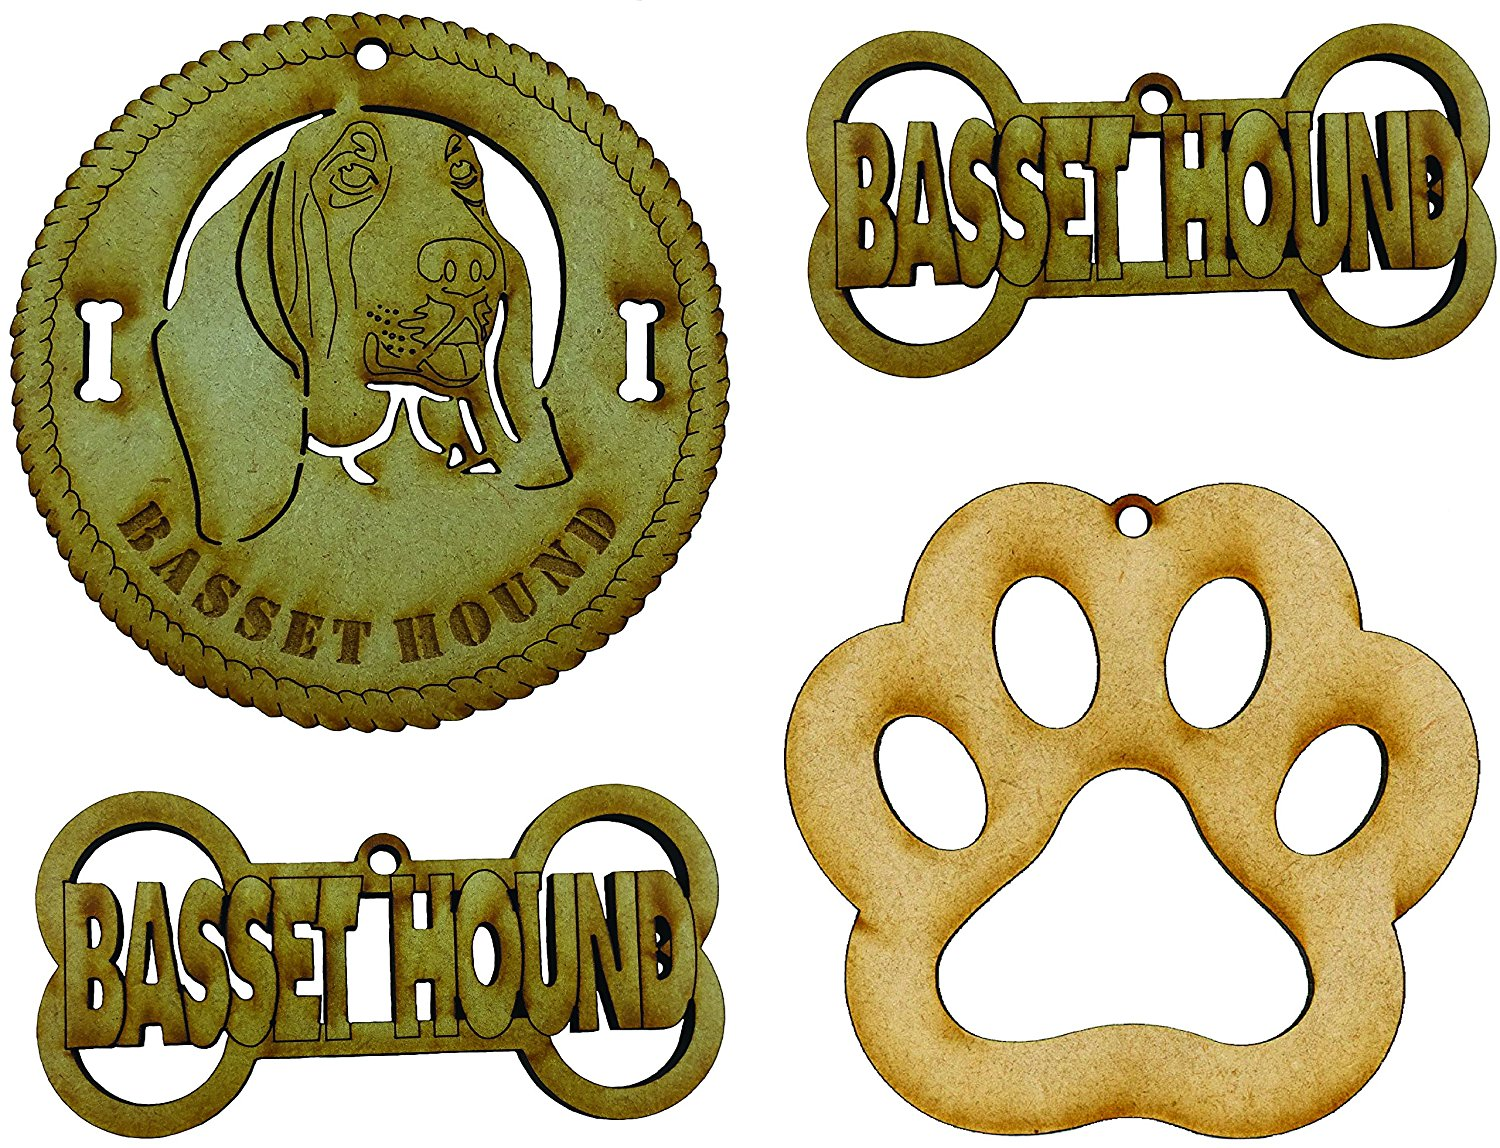 Basset Hound Dog Breed Ornaments - Set of 4